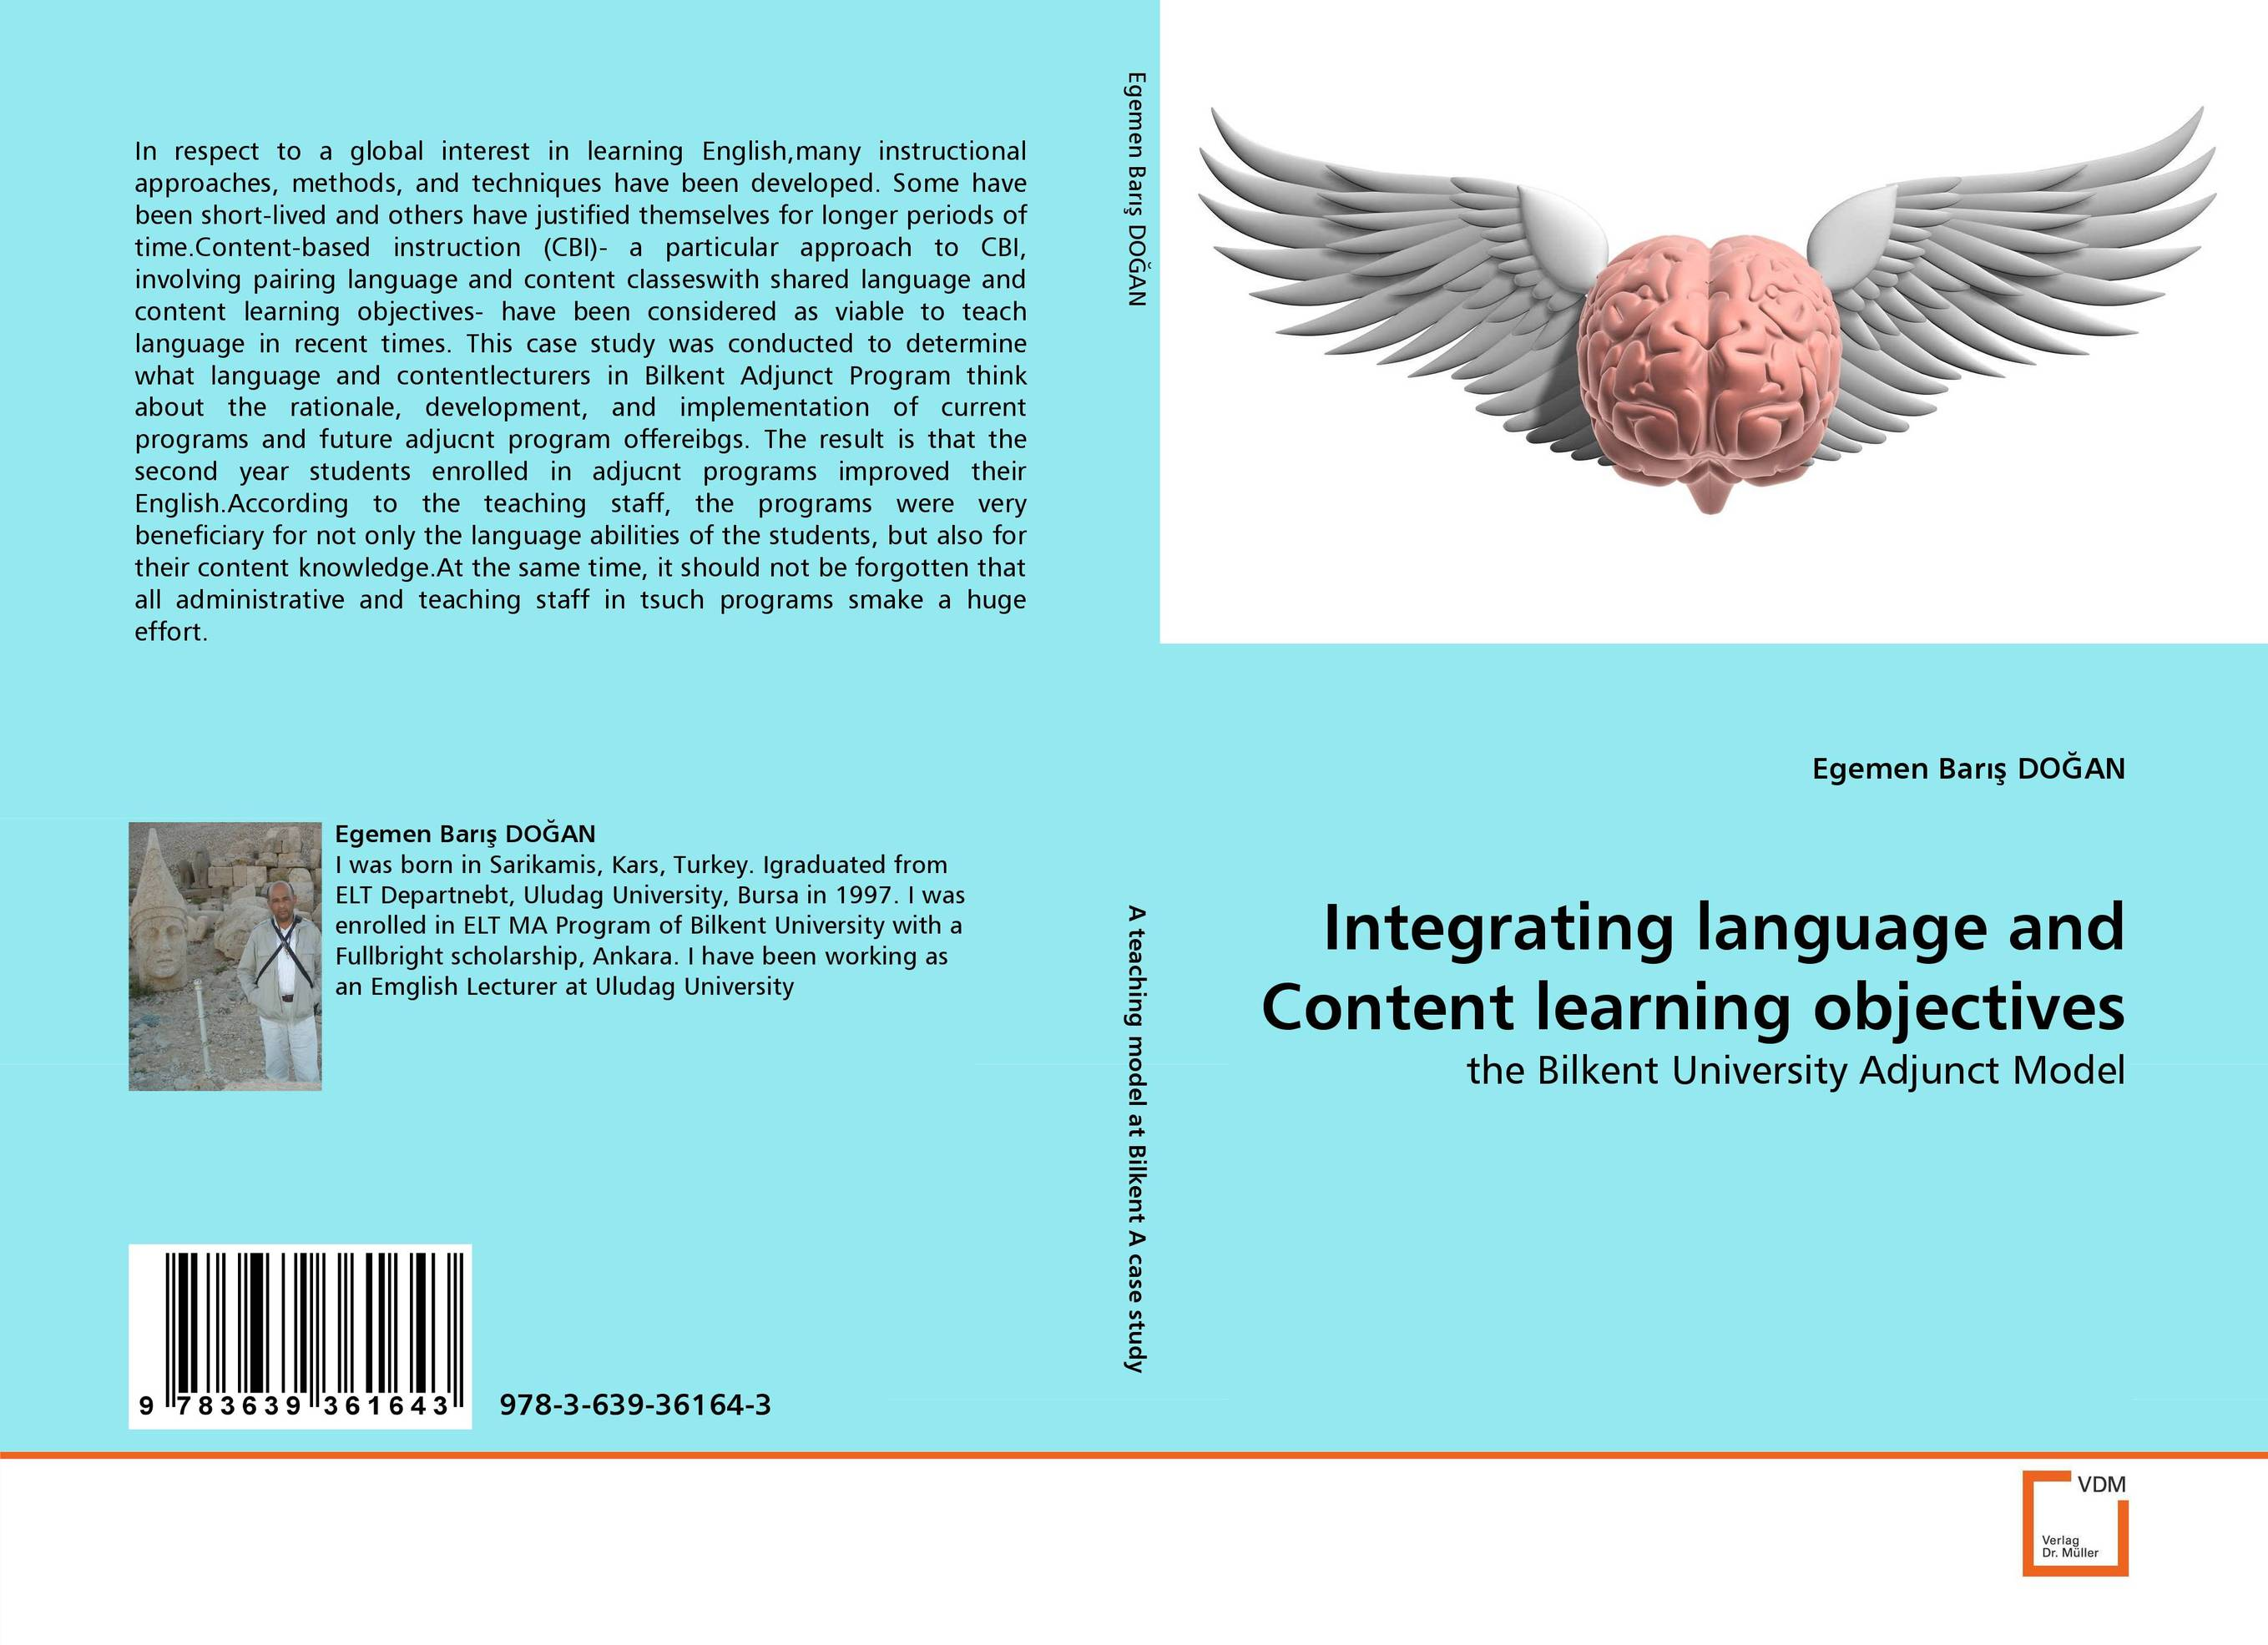 Integrating language and Content learning objectives a mahaut a new method for learning to play the transverse flute paper only